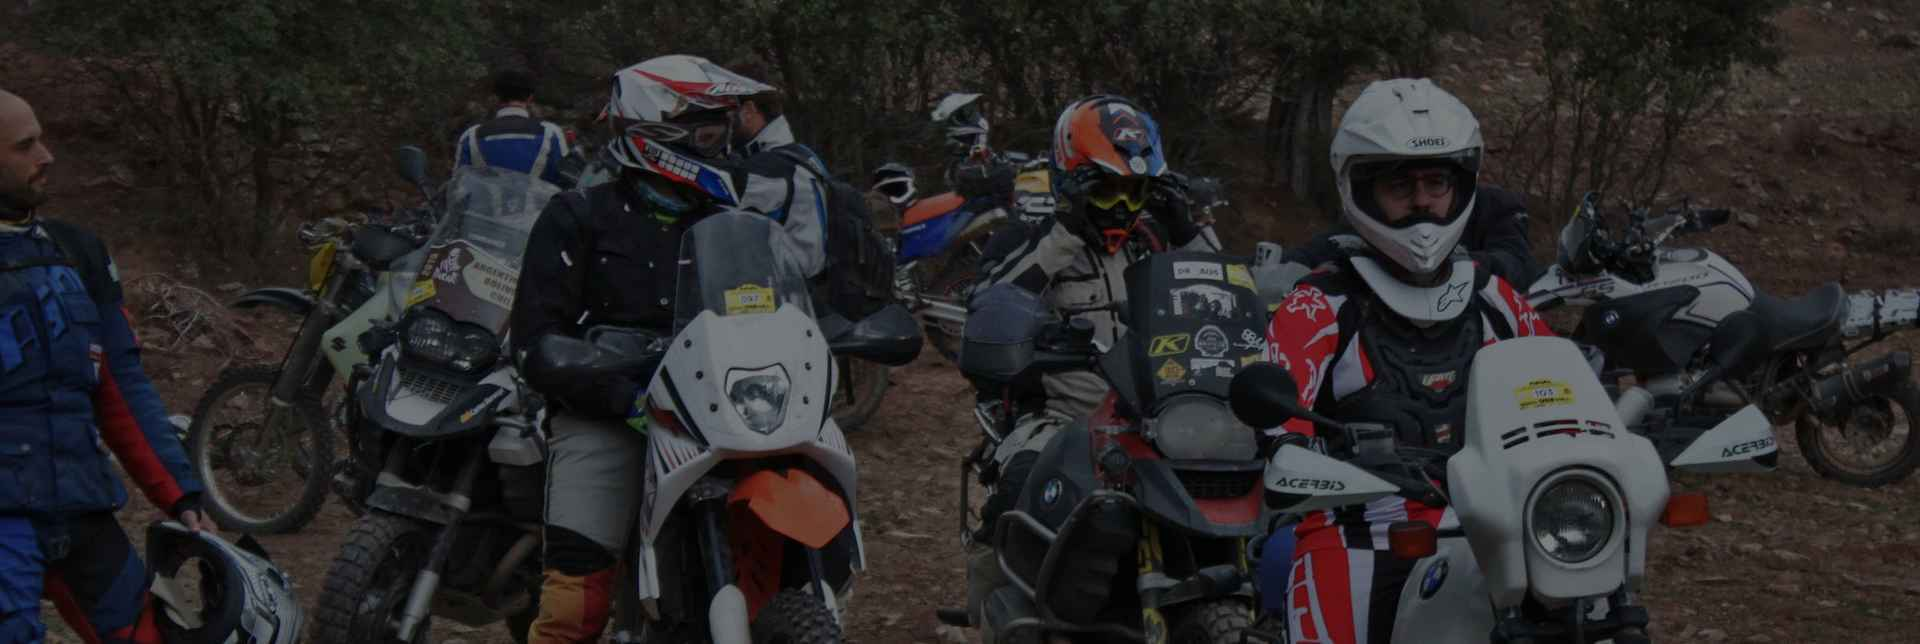 Eventos TwinTrail Experience